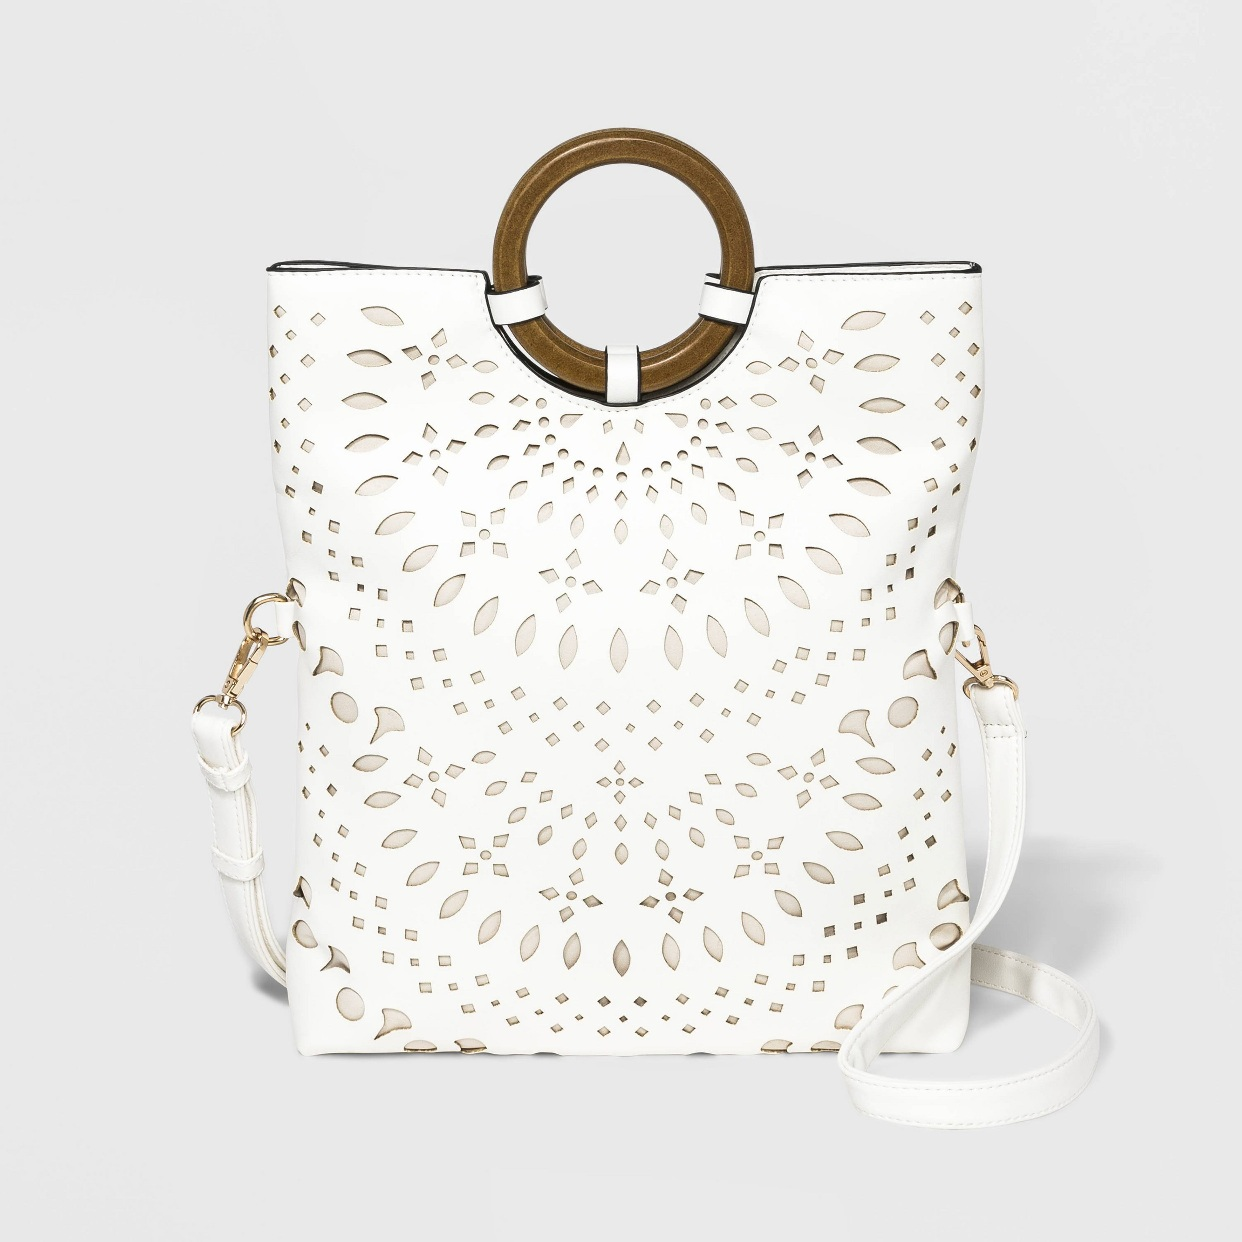 - My new favorite girl's night bag! Y'all! You can wear it two ways! And if I'm being honest, It's big enough to put some diapers, wipes, and a sippy cup in when running around with the kiddos.Find it here.